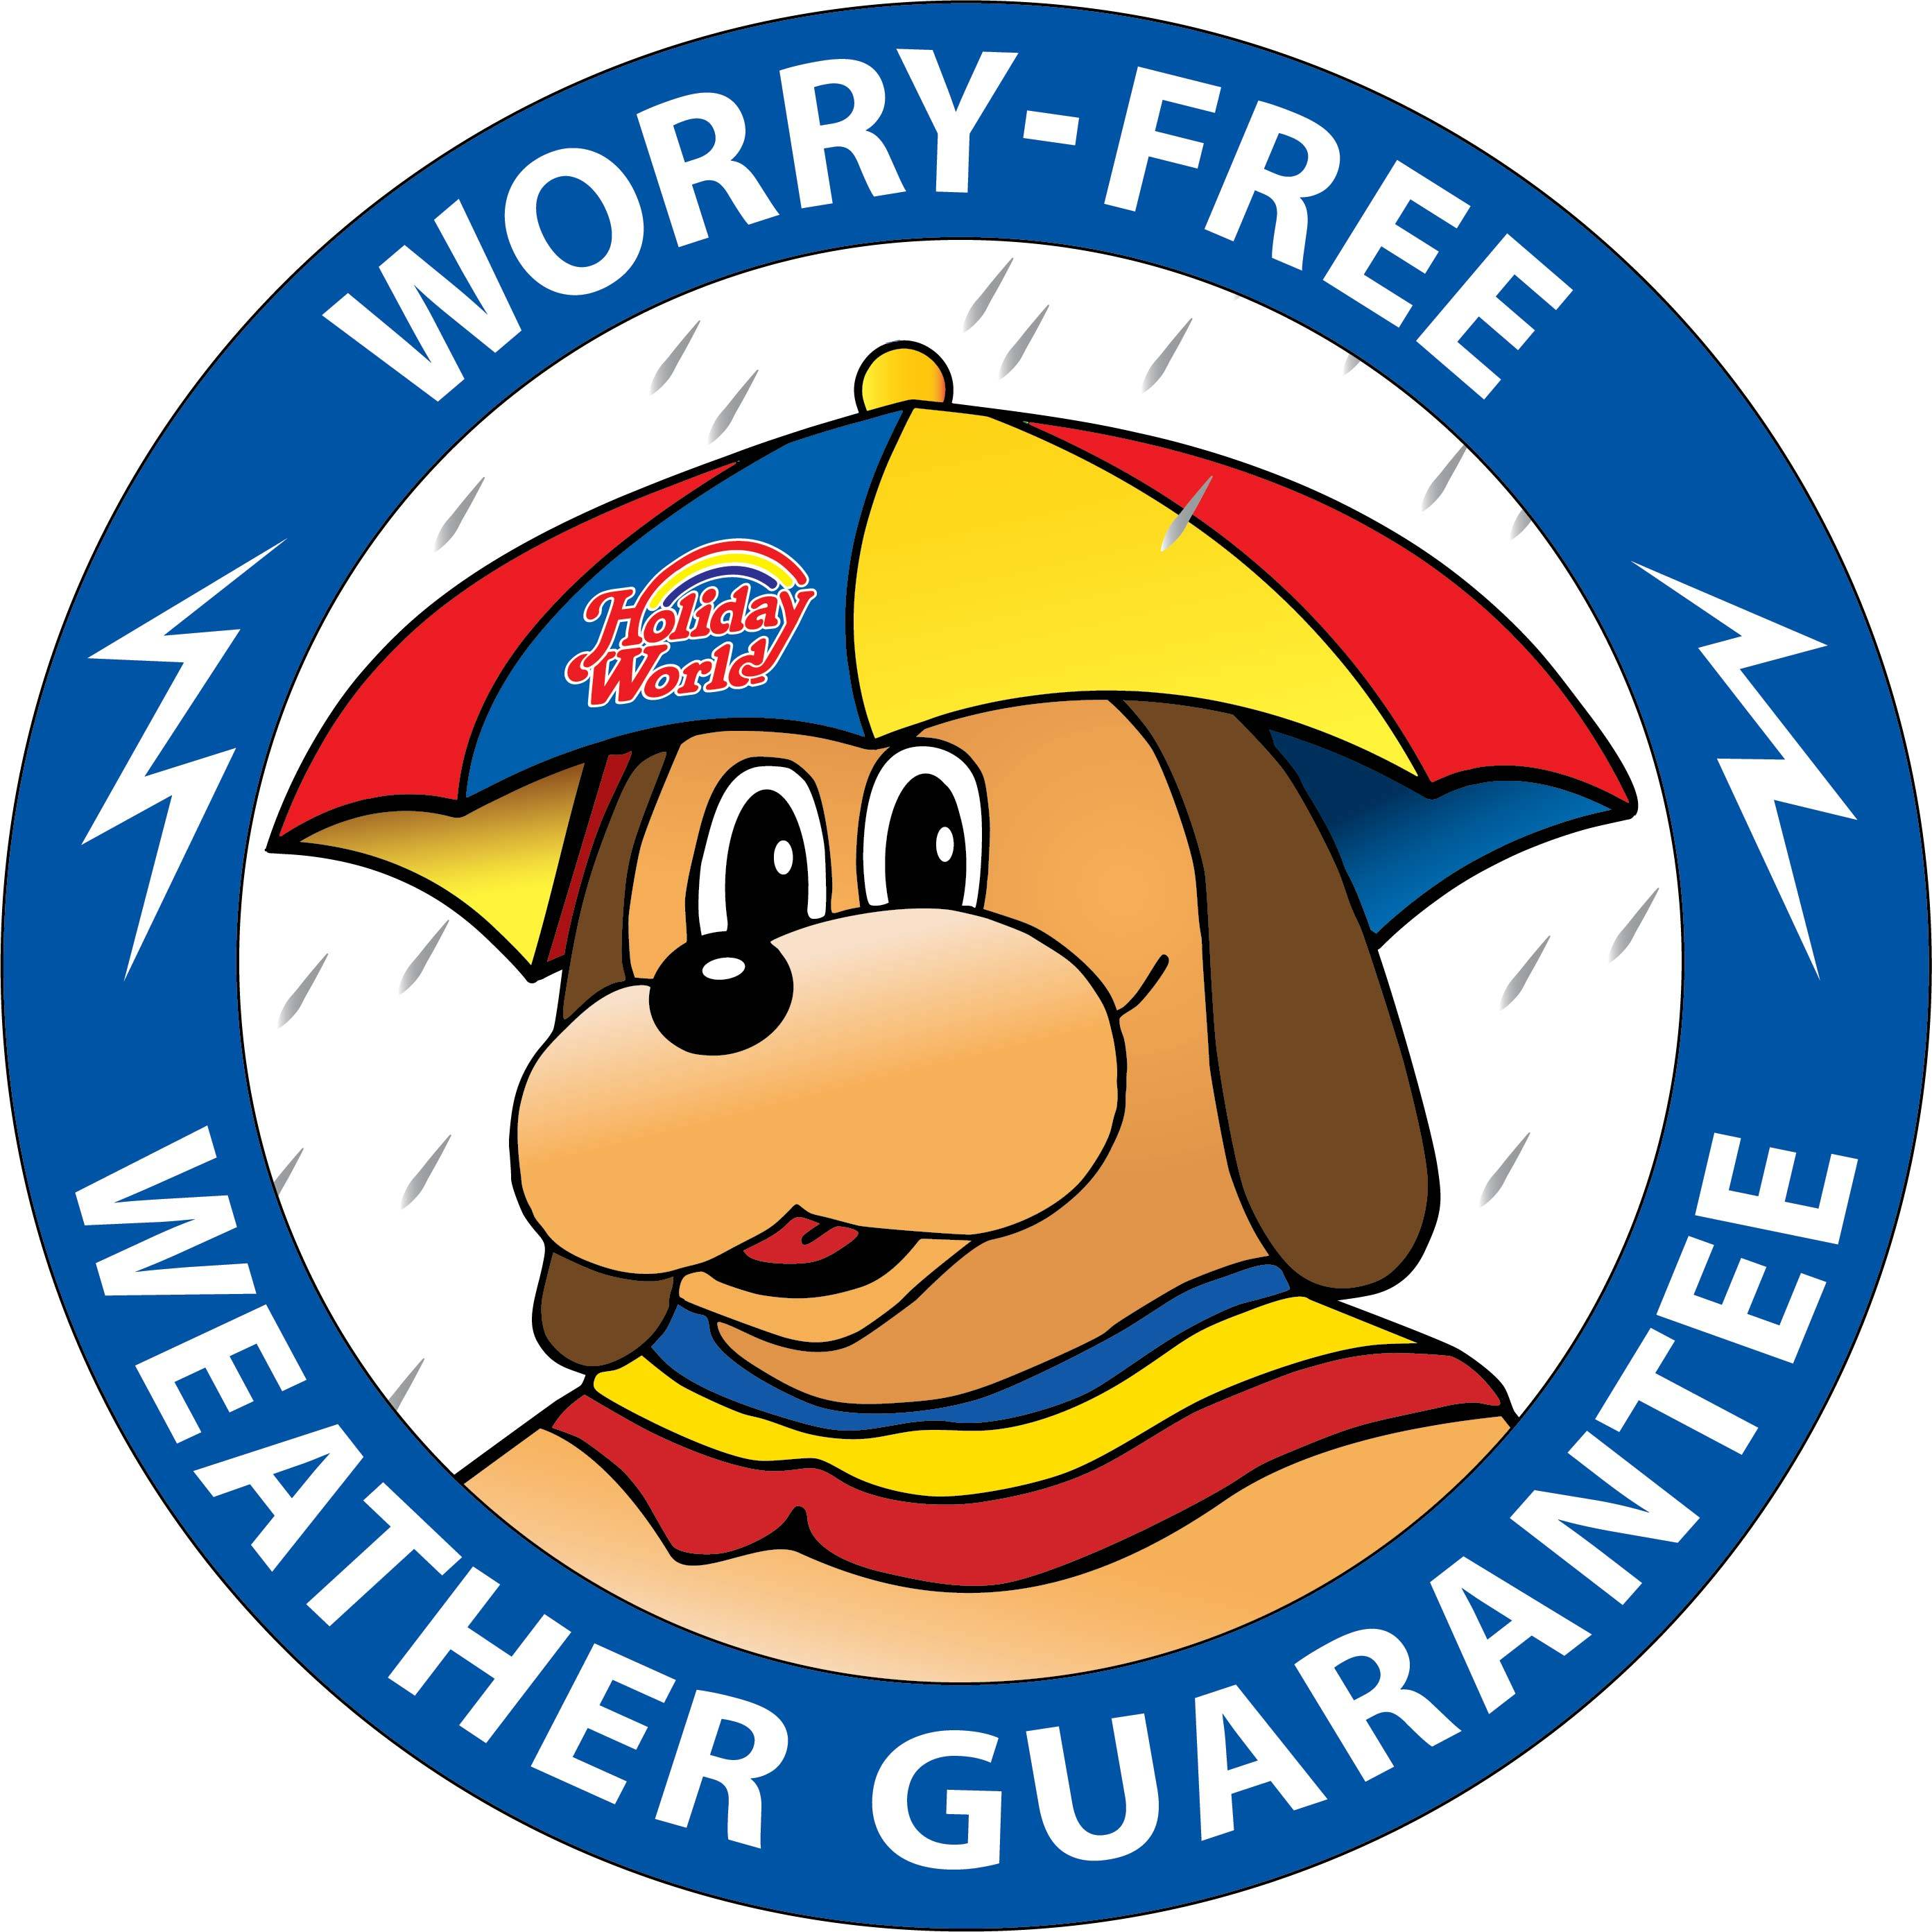 Worry-Free-Weather-Guarantee-logo.jpg